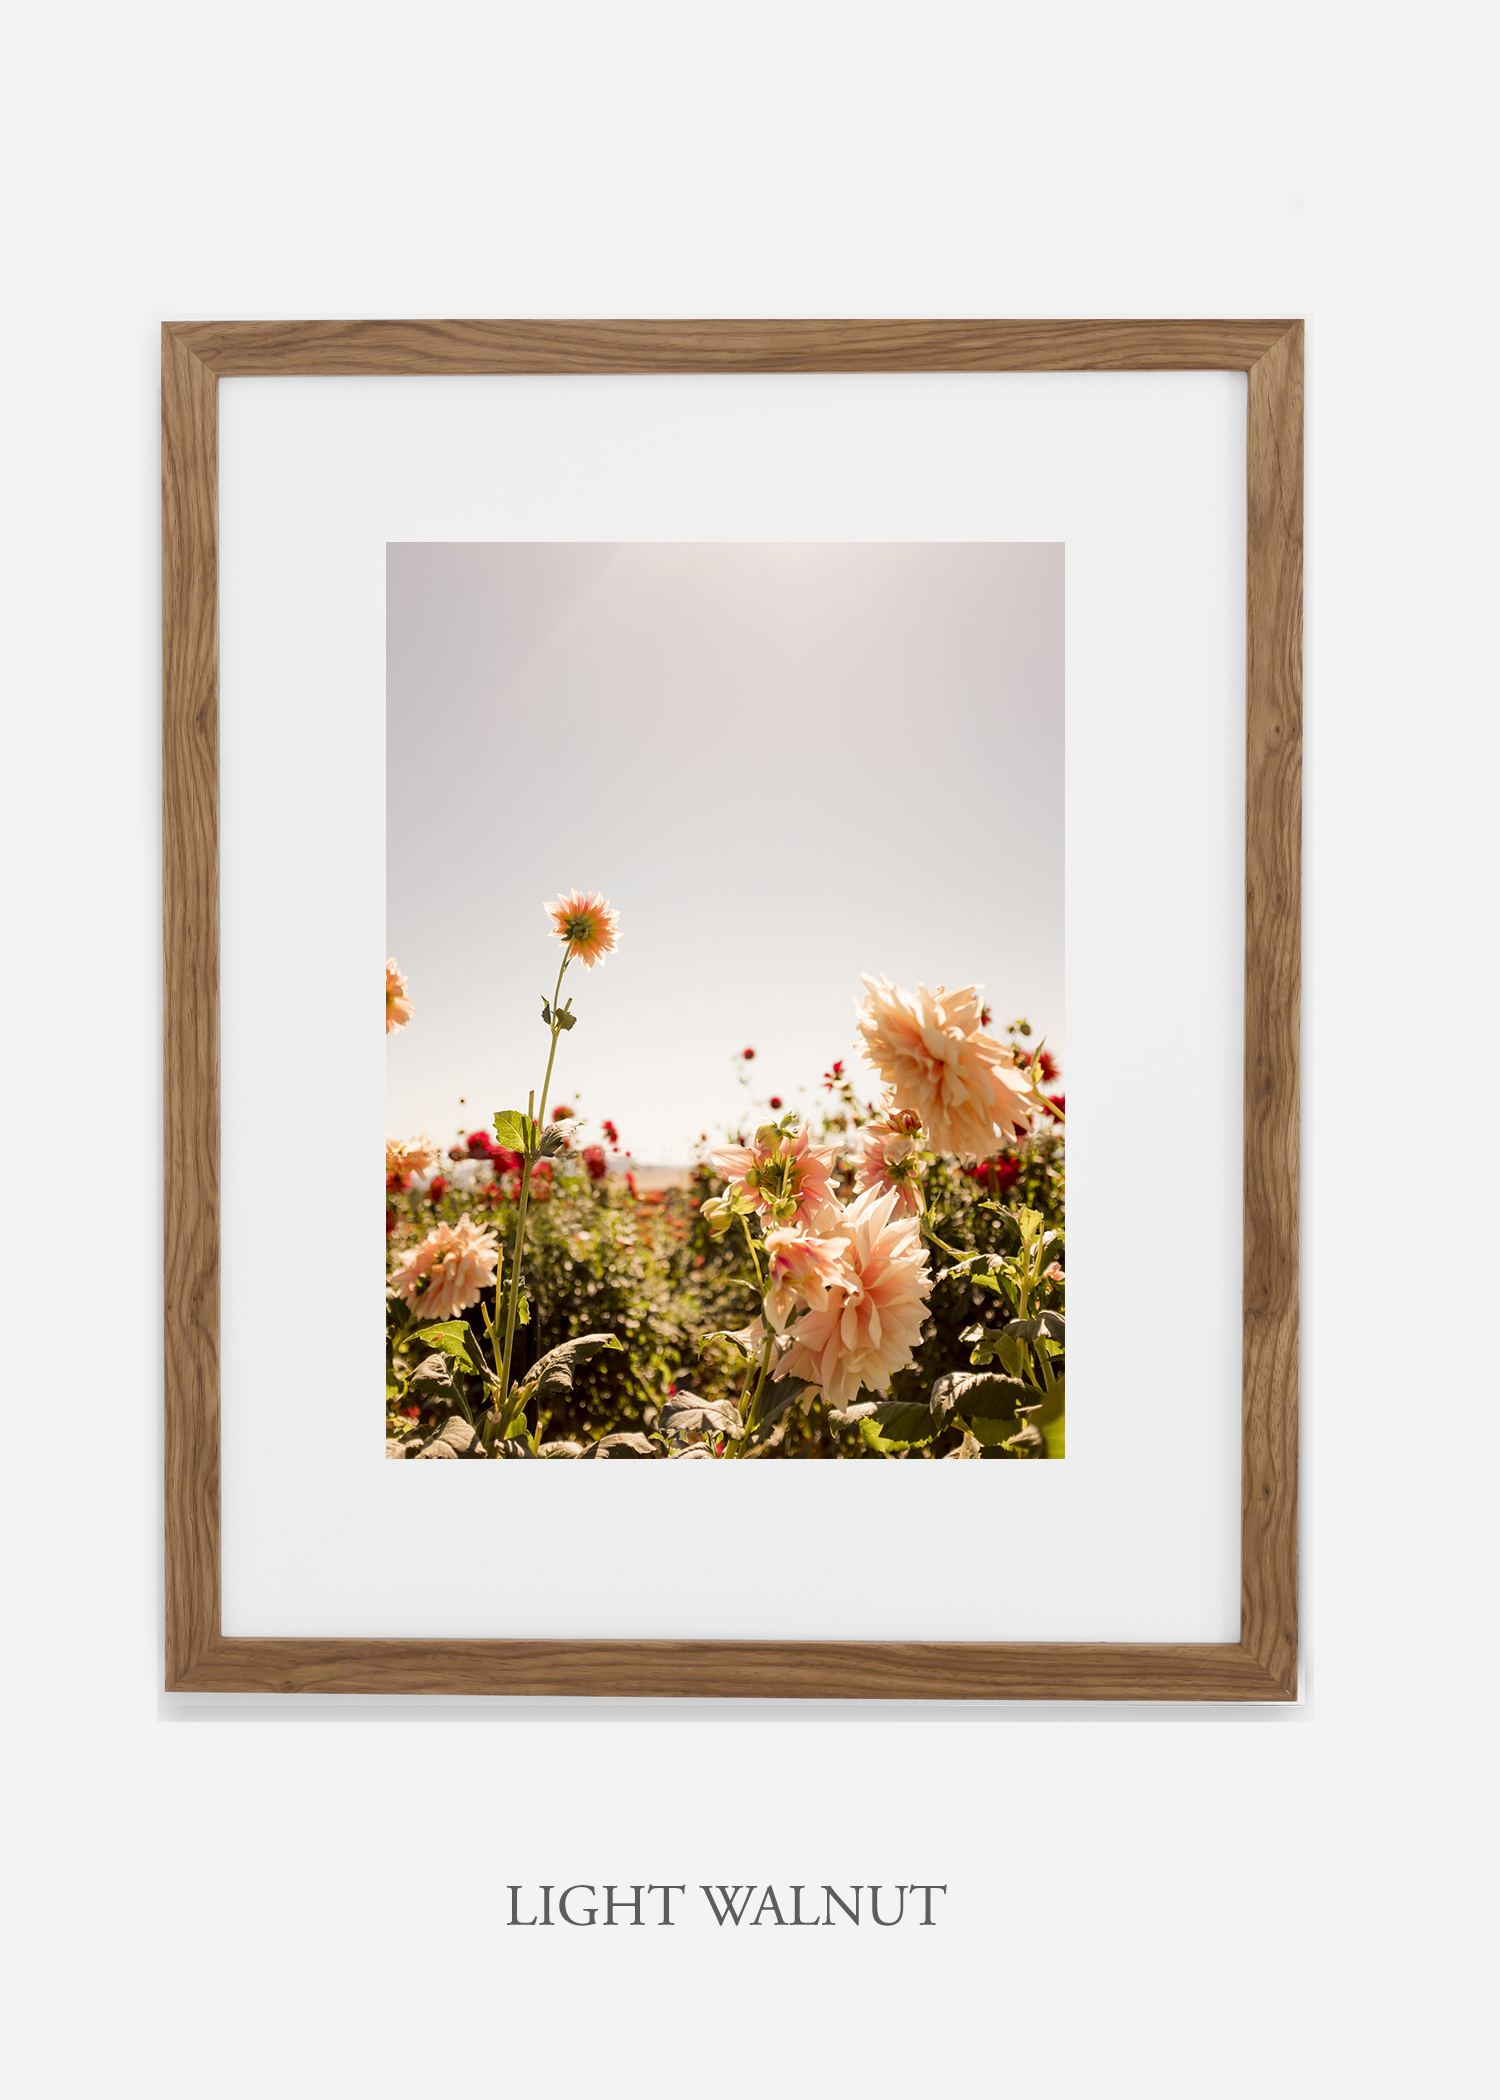 DahliaNo.6-light-walnut-frame-mat-interior-design-botanical-print-art-wilder-california-wilder-paper.jpg